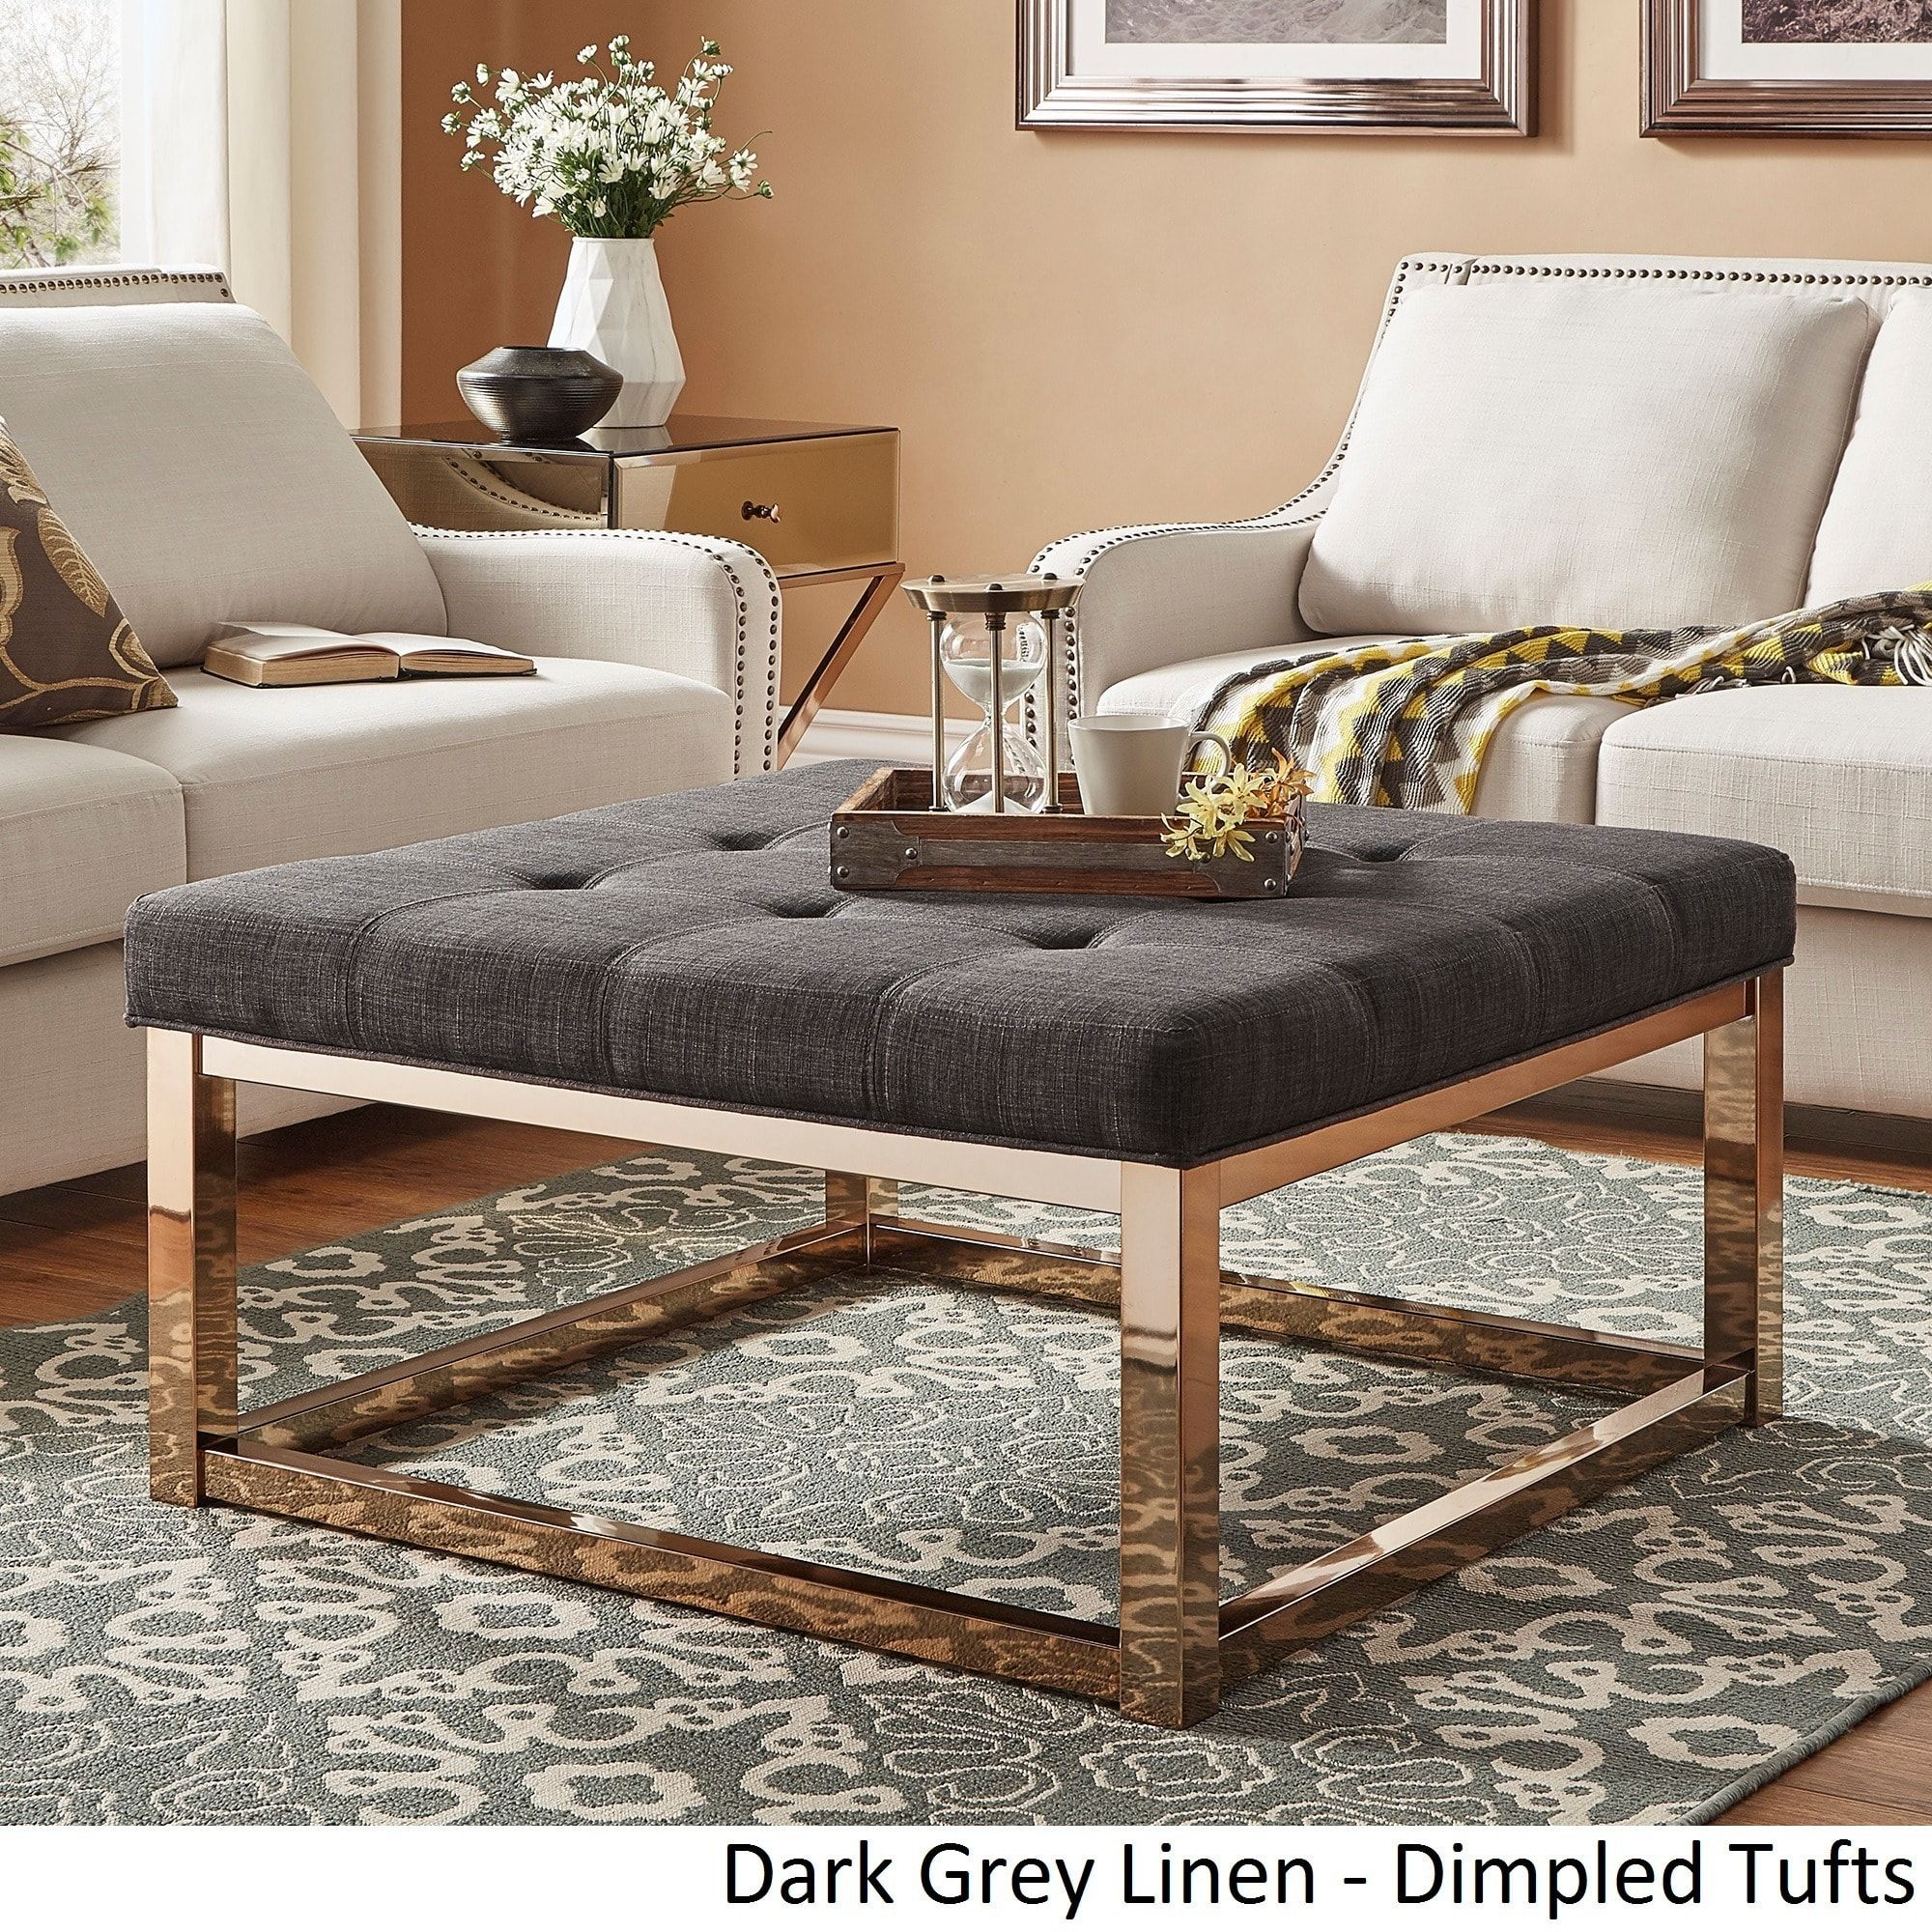 Solene Square Base Ottoman Coffee Table - Champagne Gold by iNSPIRE Q Bold  ([Beige Linen]- Smooth Top), Size Large (Fabric)